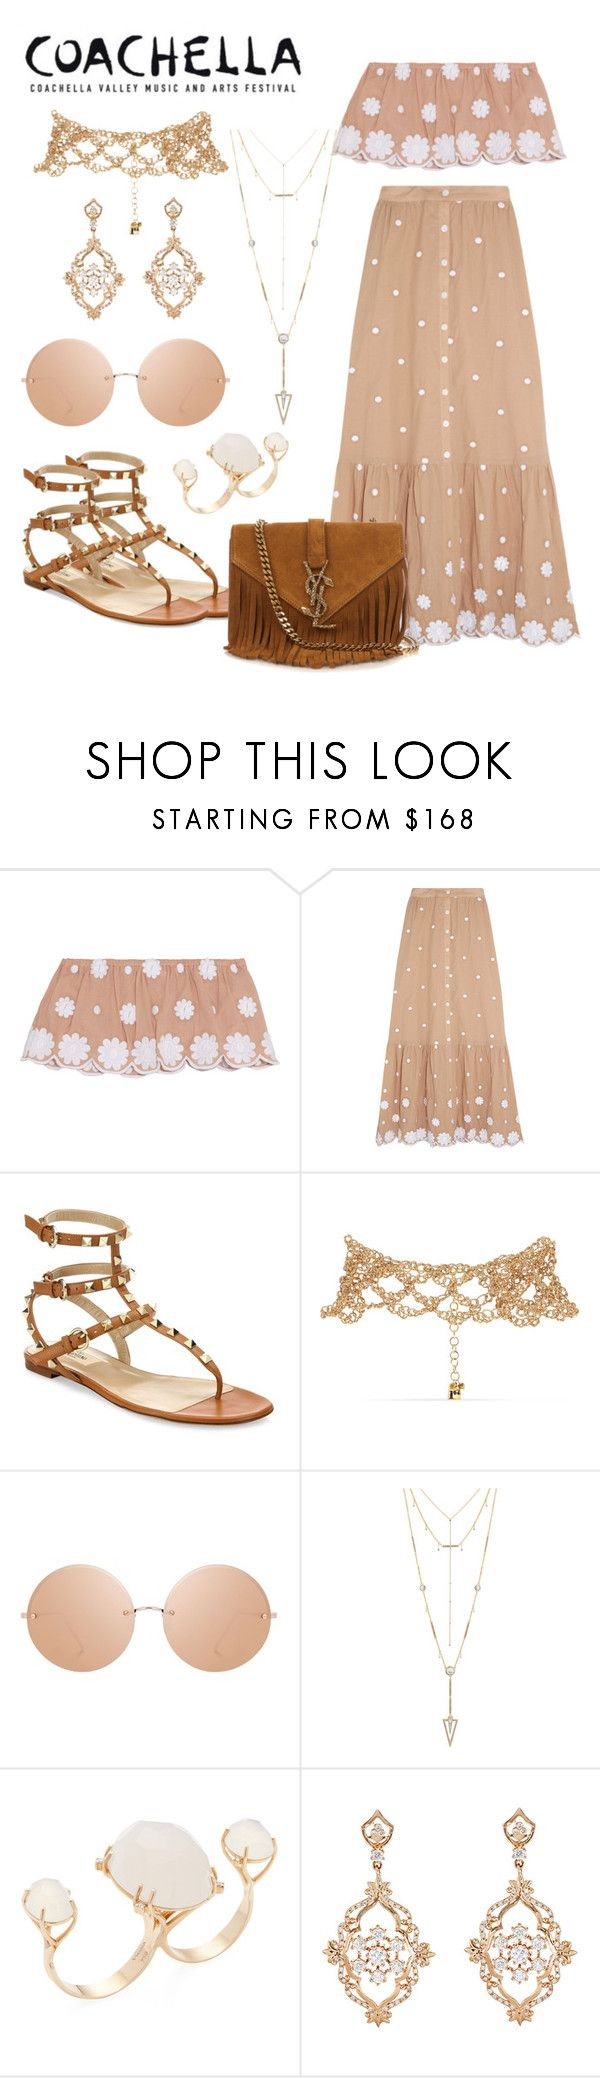 """""""Coachella 2017 #5"""" by hemmo1drauhl ❤ liked on Polyvore featuring Miguelina, Valentino, Rosantica, Linda Farrow, House of Harlow 1960, Vianna B.R.A.S.I.L, Sara Weinstock and Yves Saint Laurent"""